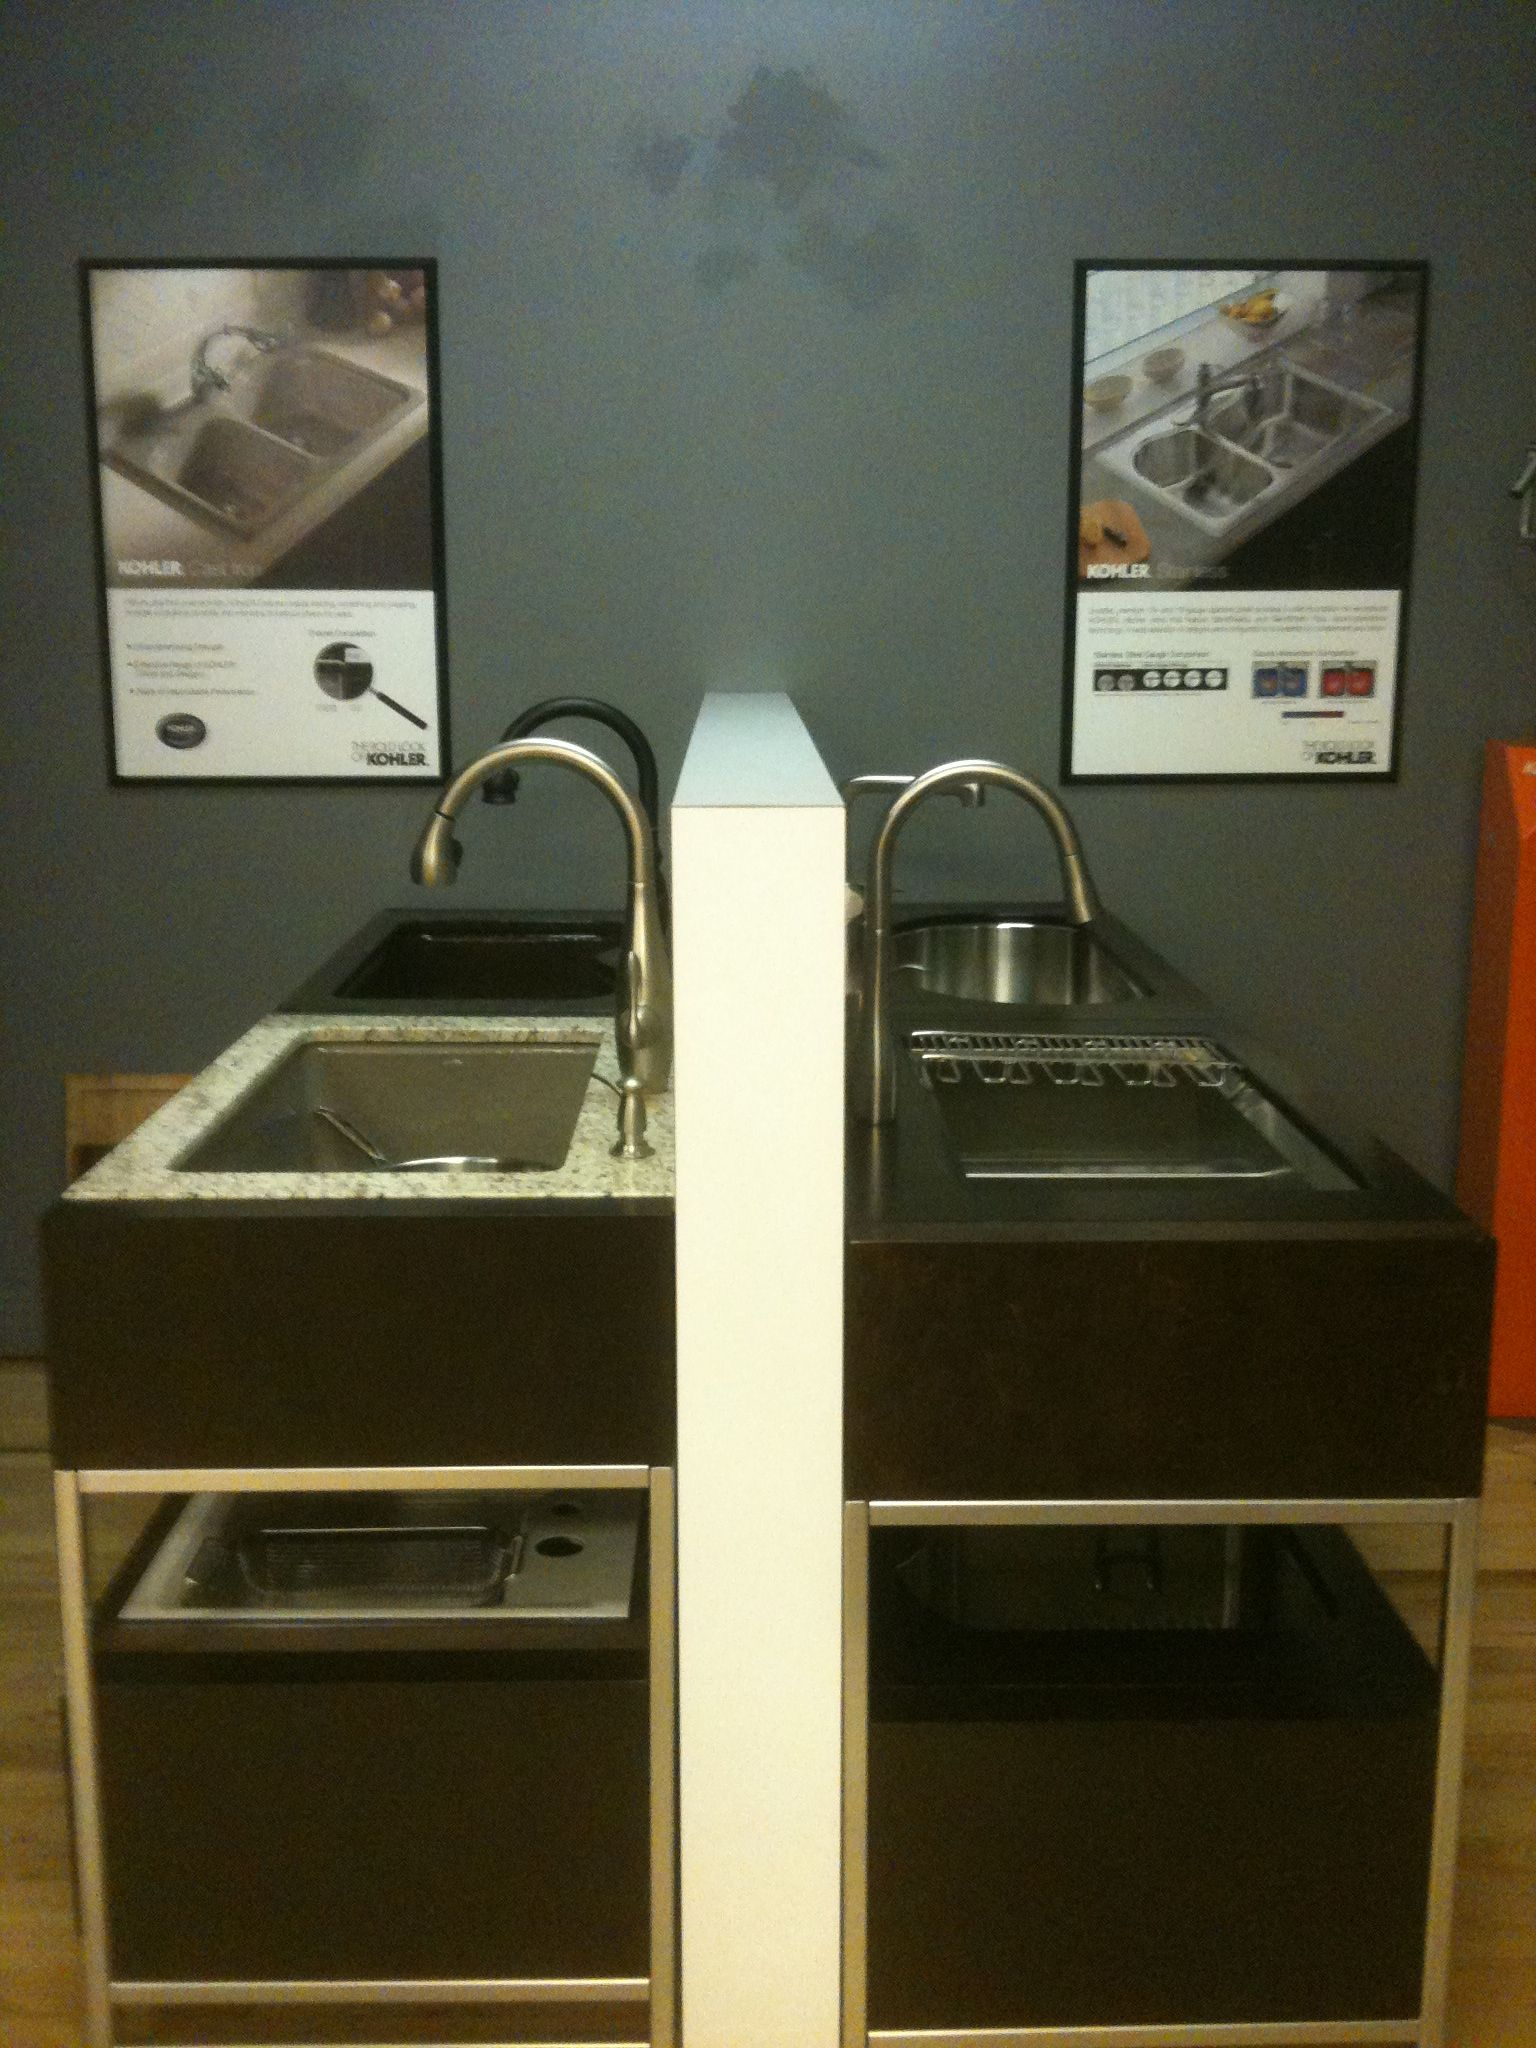 Kohler Kitchen Sink Displays | Our Denver Showroom | Pinterest ...